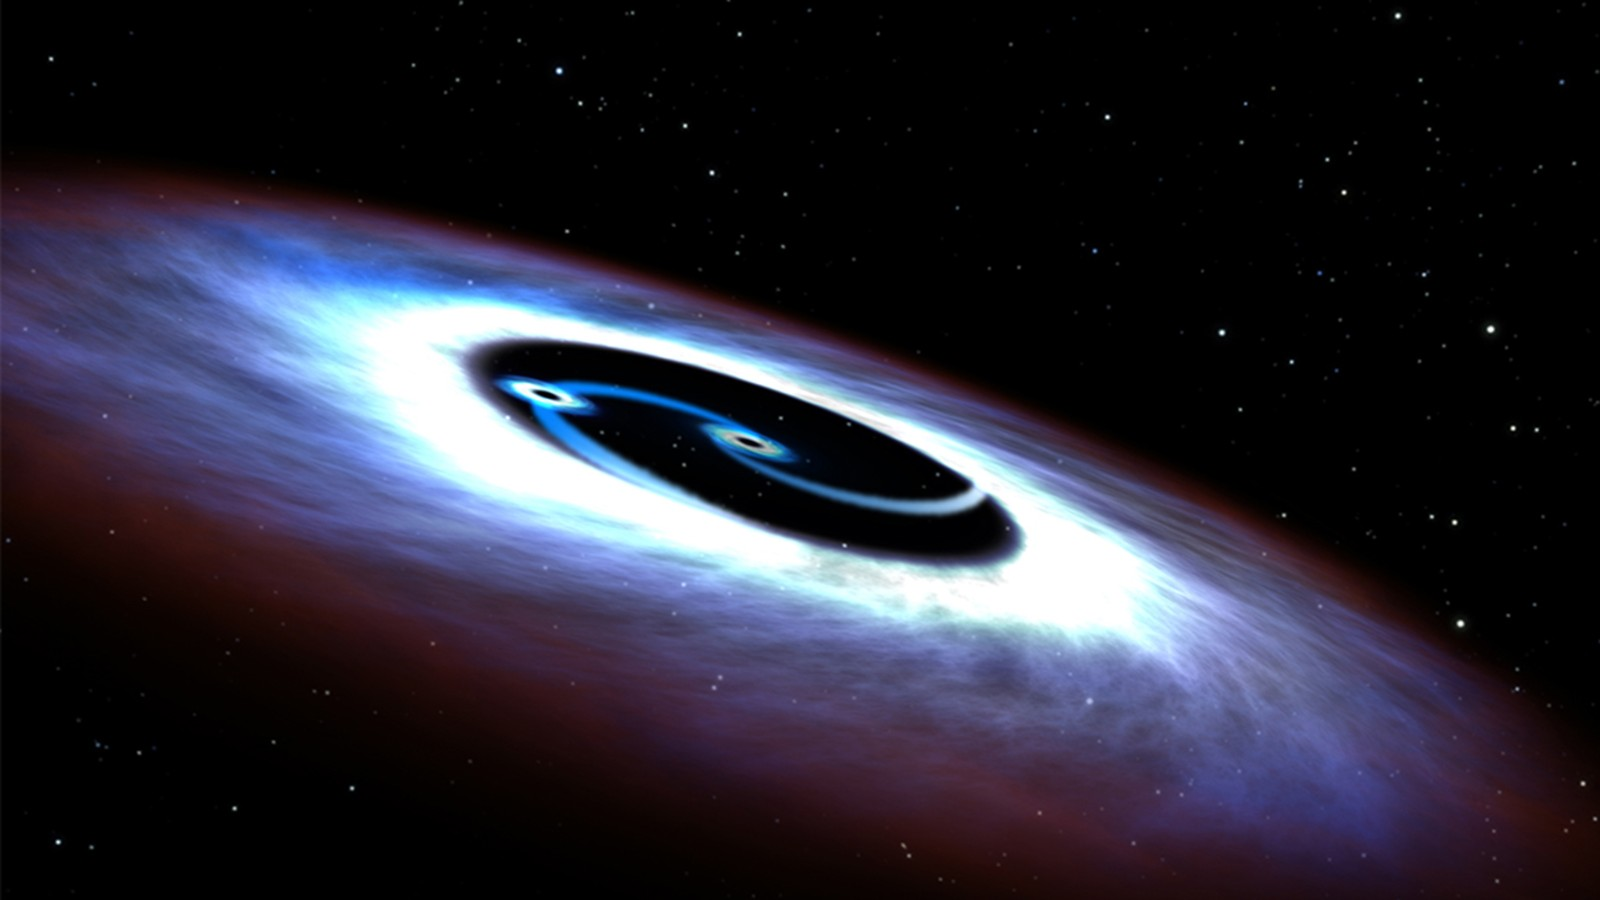 08 >> Double black hole powering quasar, astronomers find - CNN